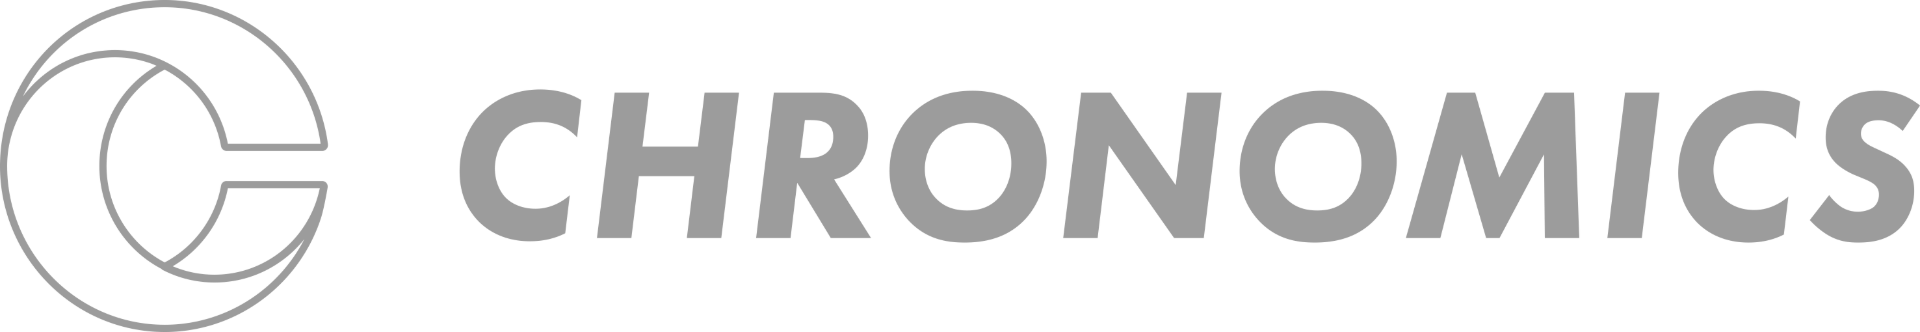 Chronomics Wordmark Blue